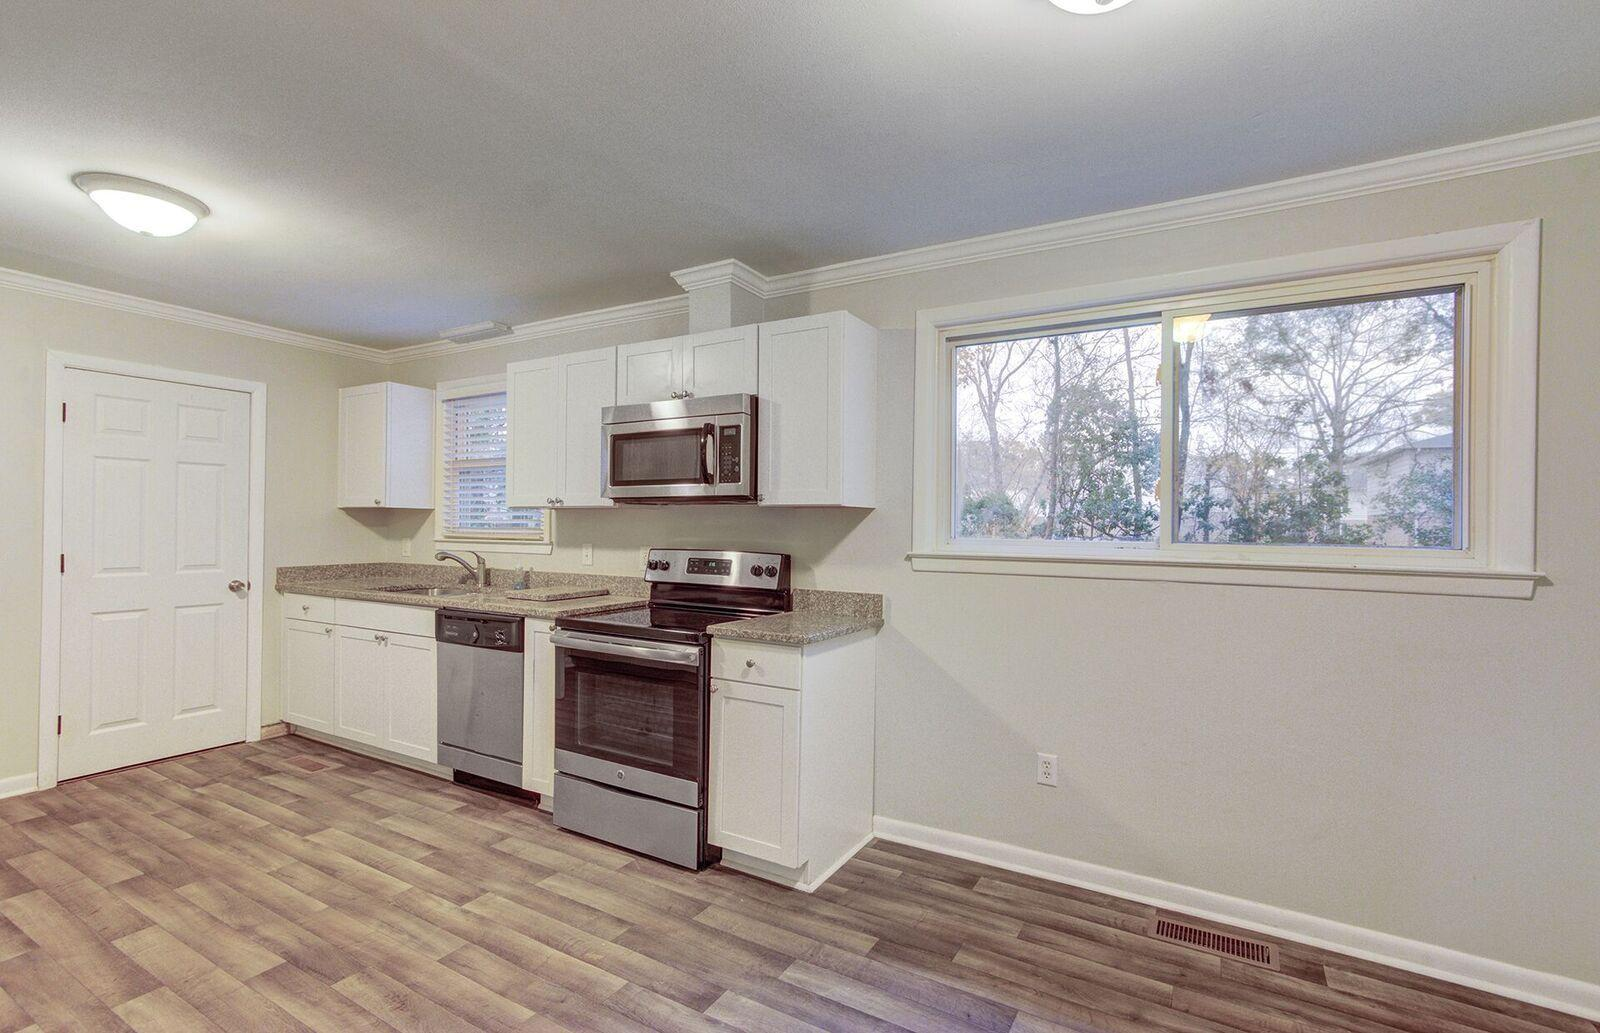 West Glow Homes For Sale - 1104 Crull, Charleston, SC - 7